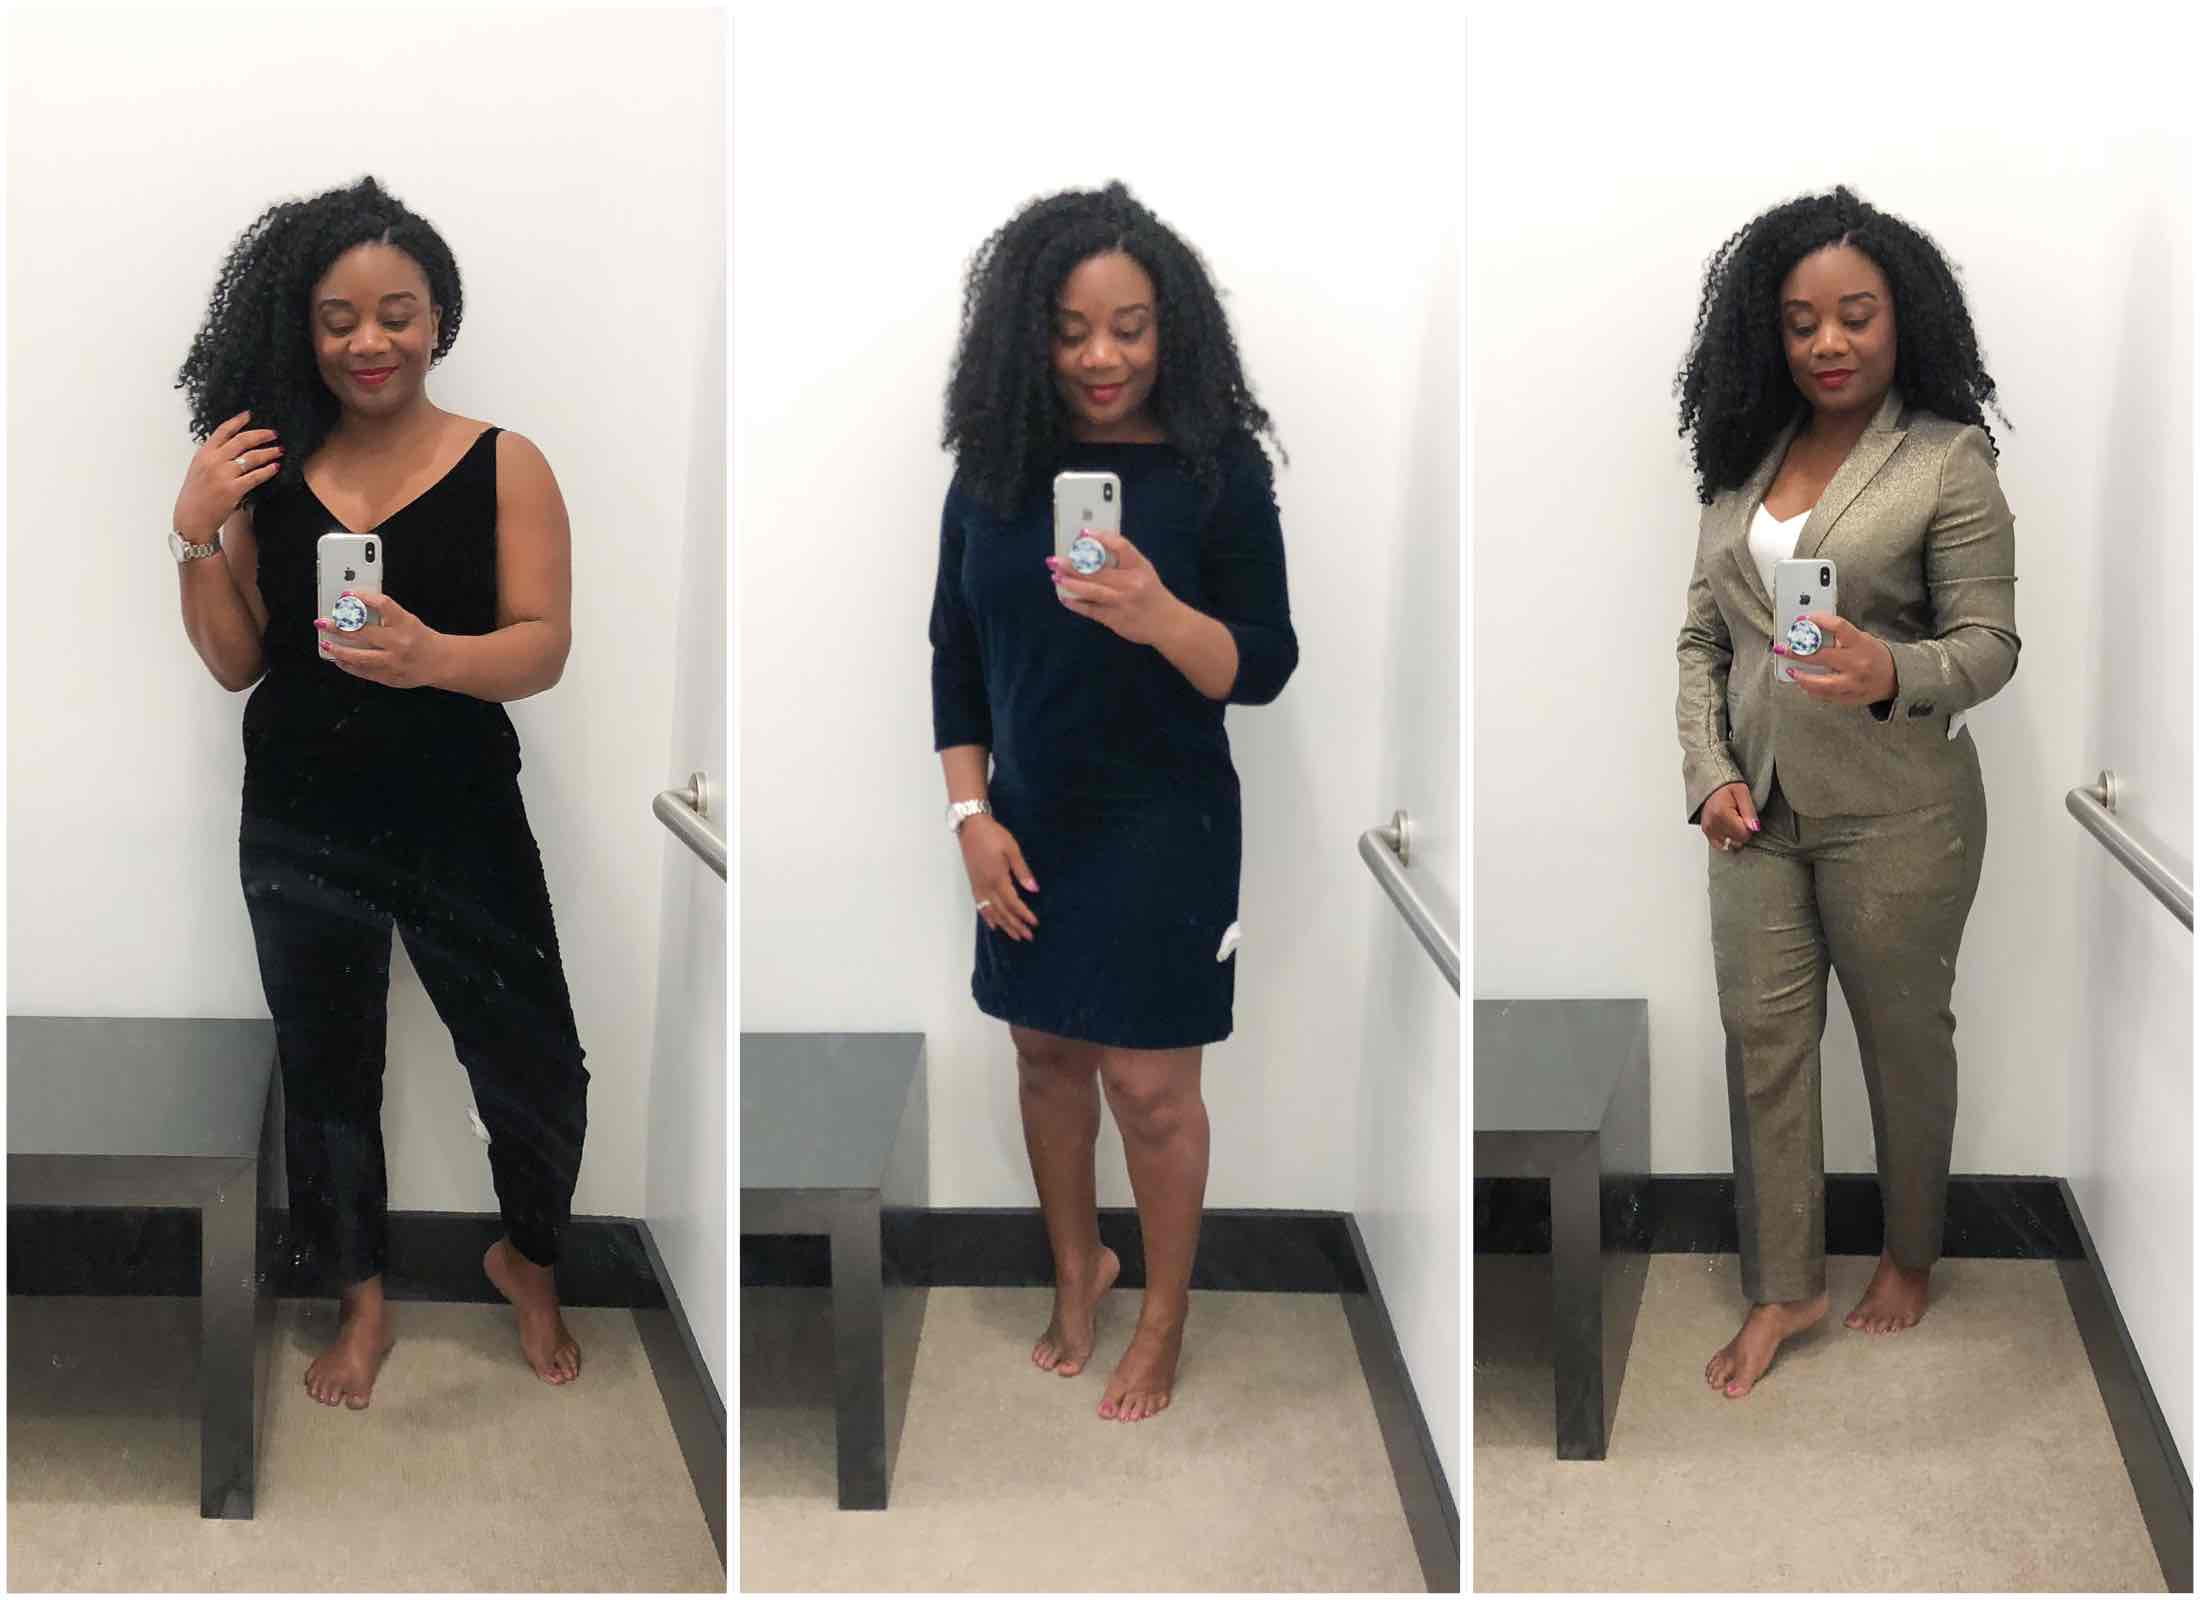 Whether you're a die-hard Banana Republic fan, or just here for the cute clothes, this batch of #DressingRoomSelfies is for you.